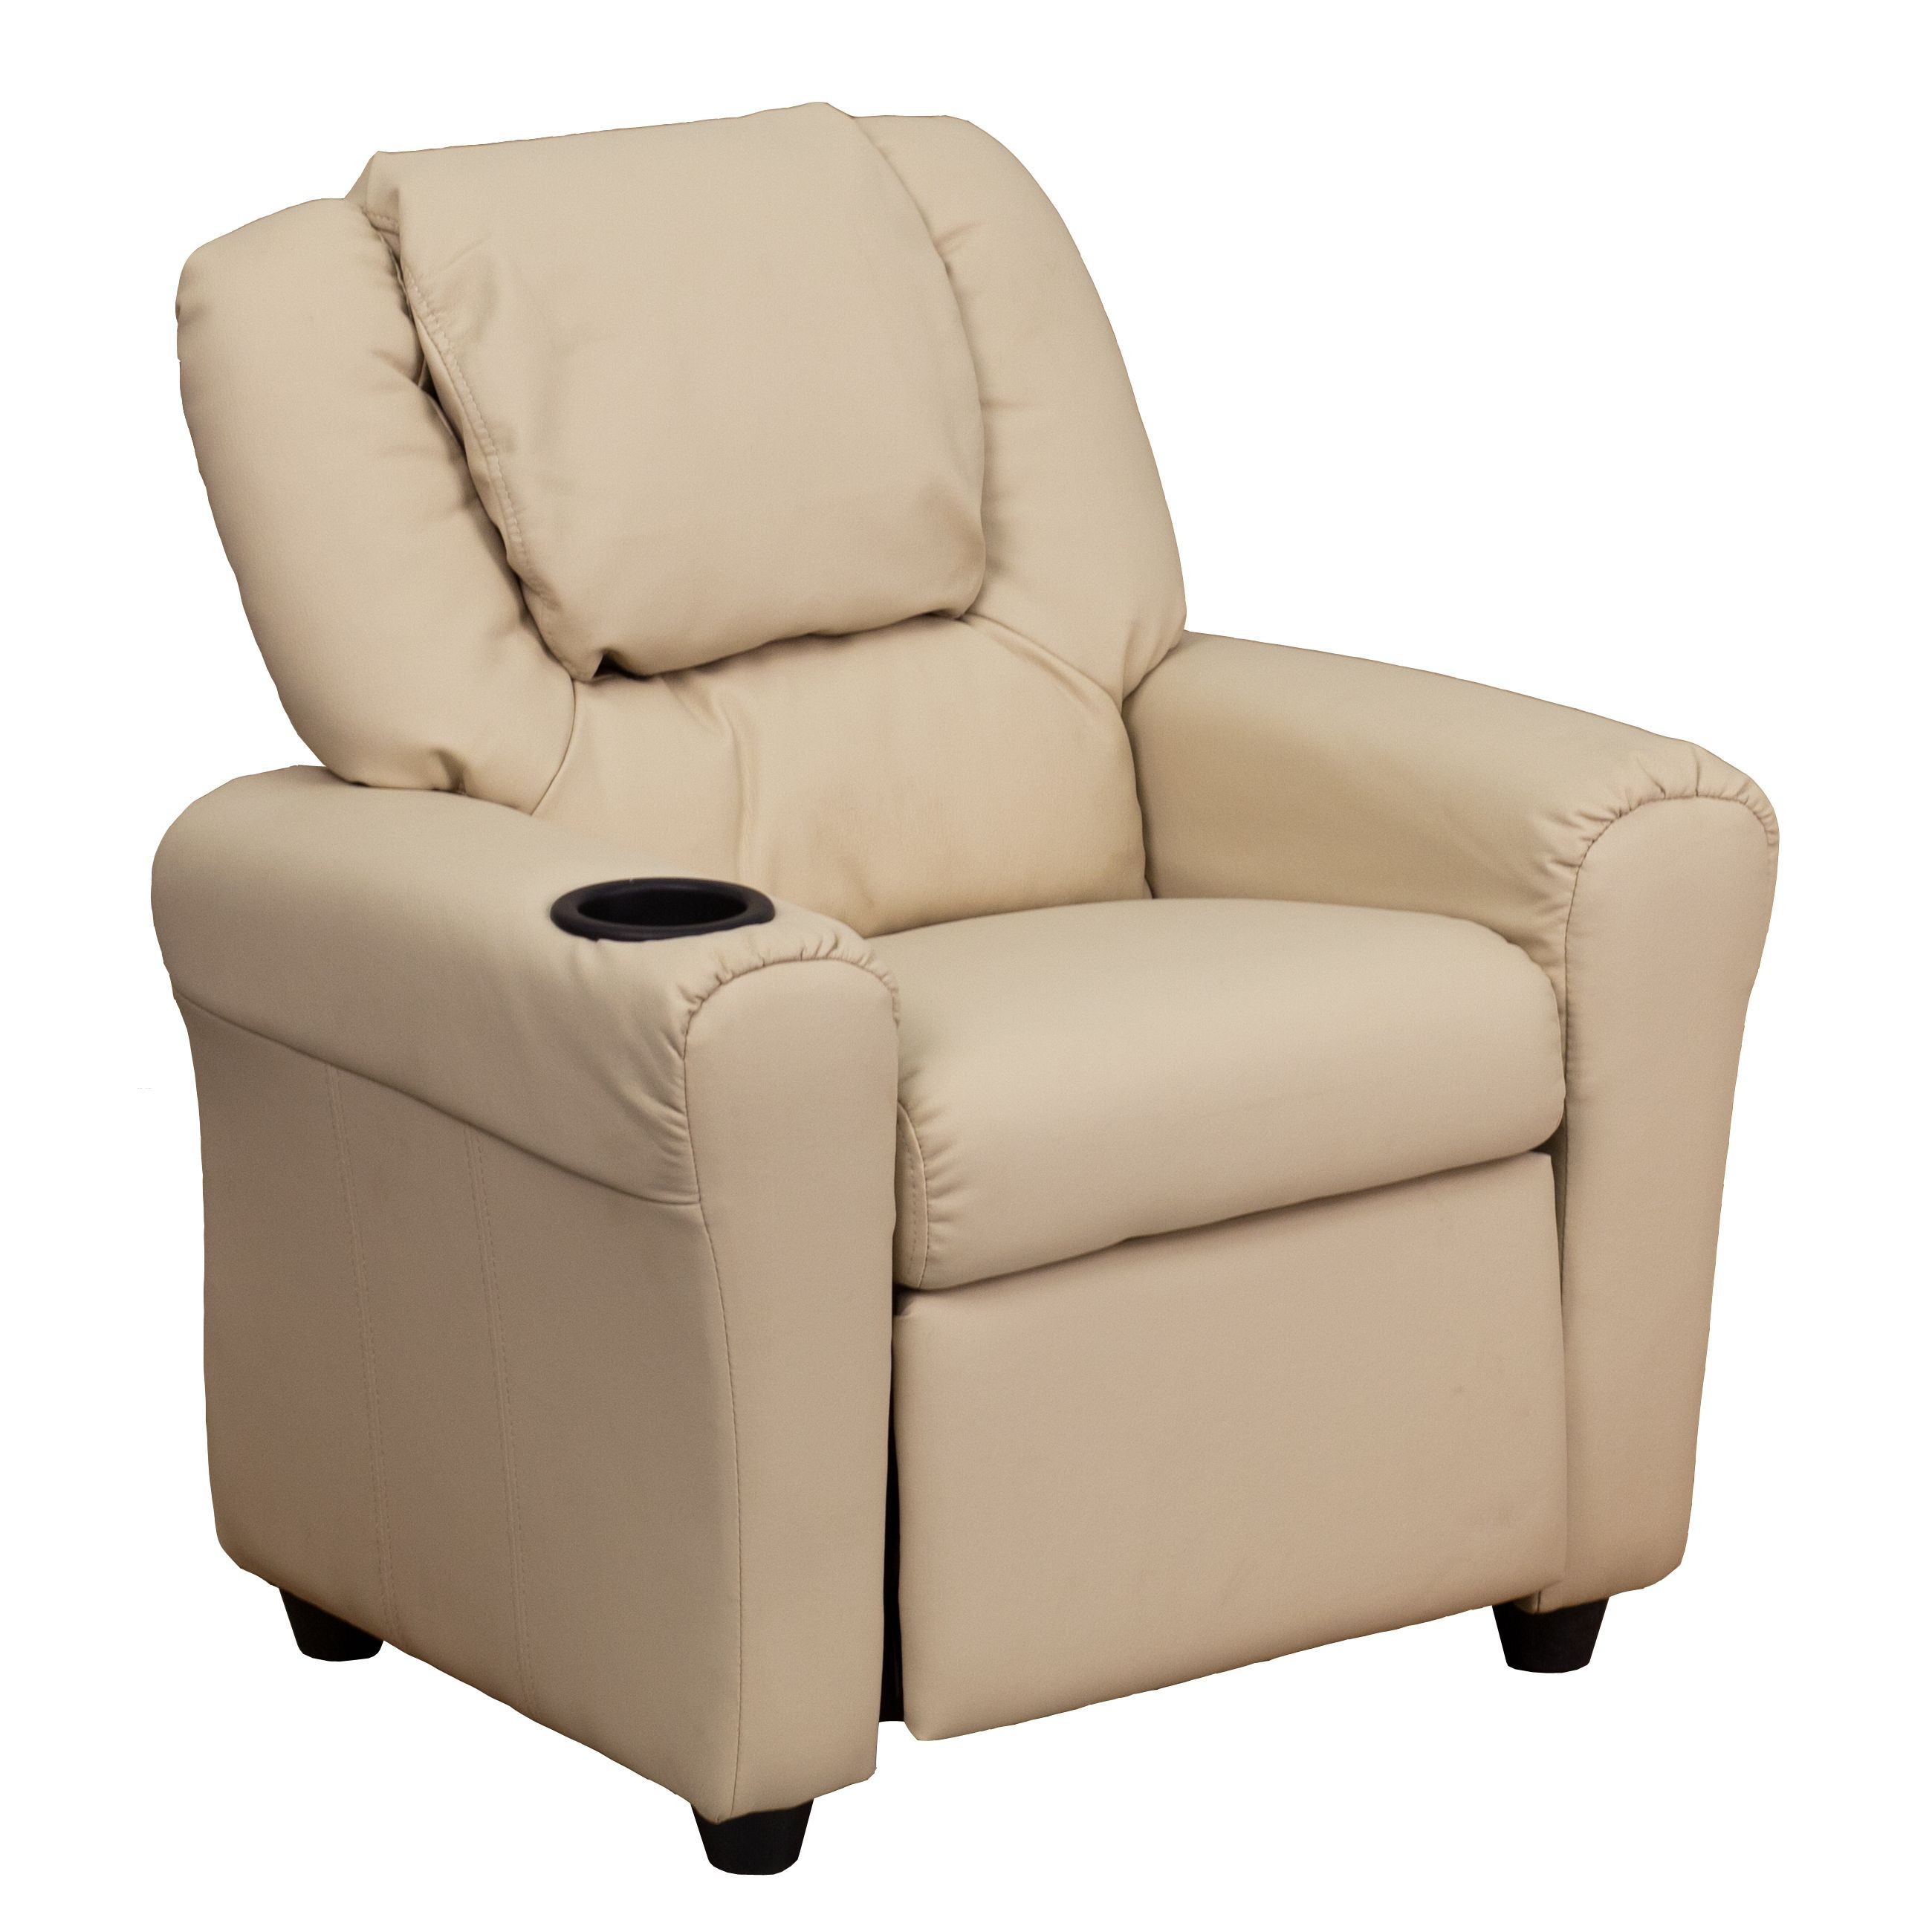 Kids Reclining Chair Flash Furniture Dg Ult Kid Bge Gg Contemporary Beige Vinyl